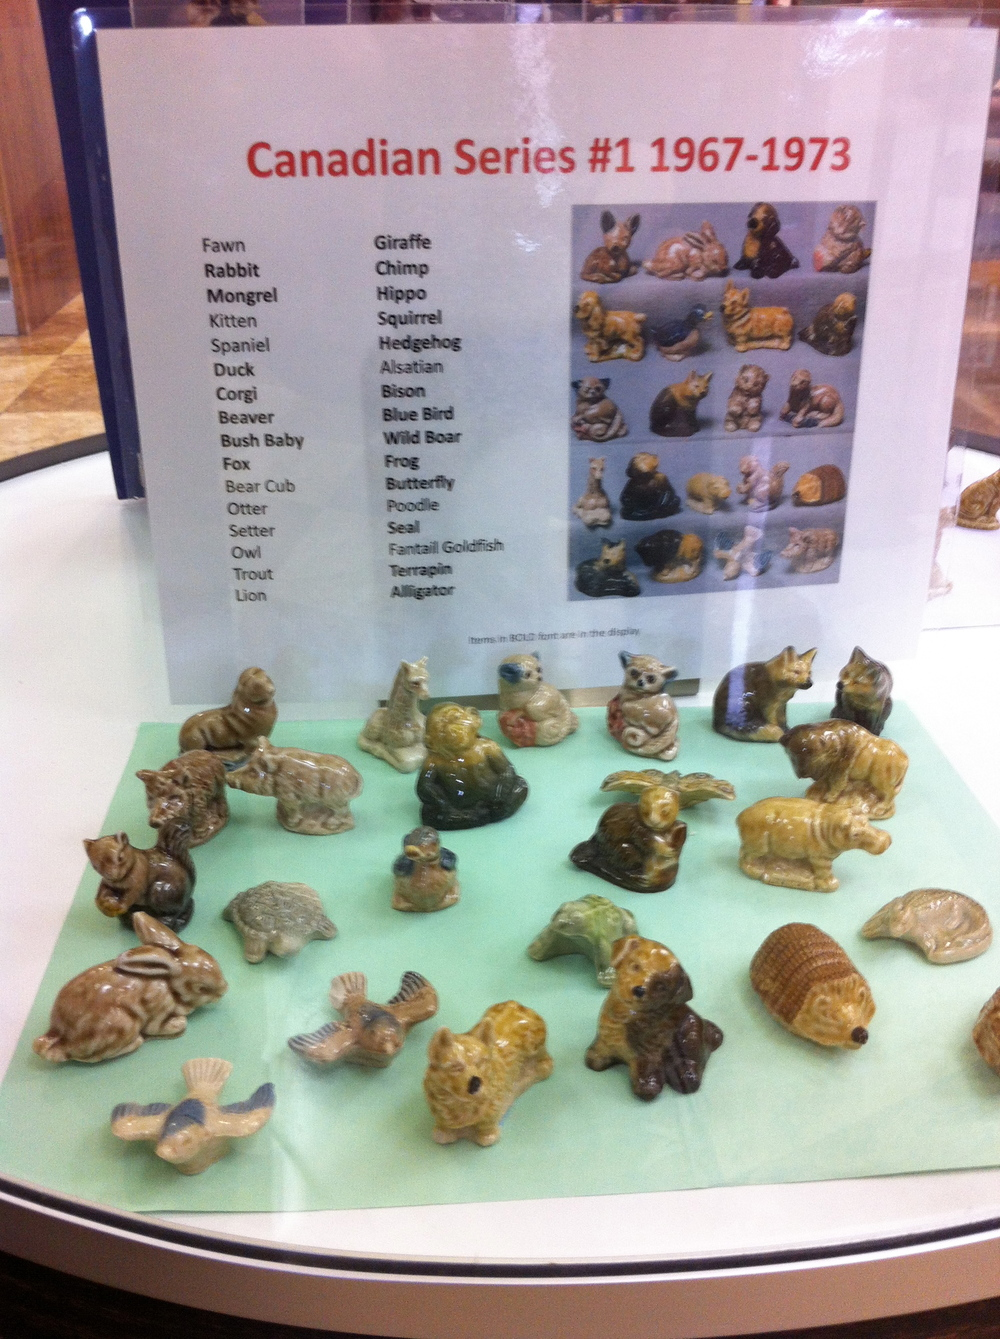 We also found this display of Red Rose Tea figurines at the library.  There were several series but the Canadian Series caught our interest. Who knew the Mongrel was a Canadian animal?